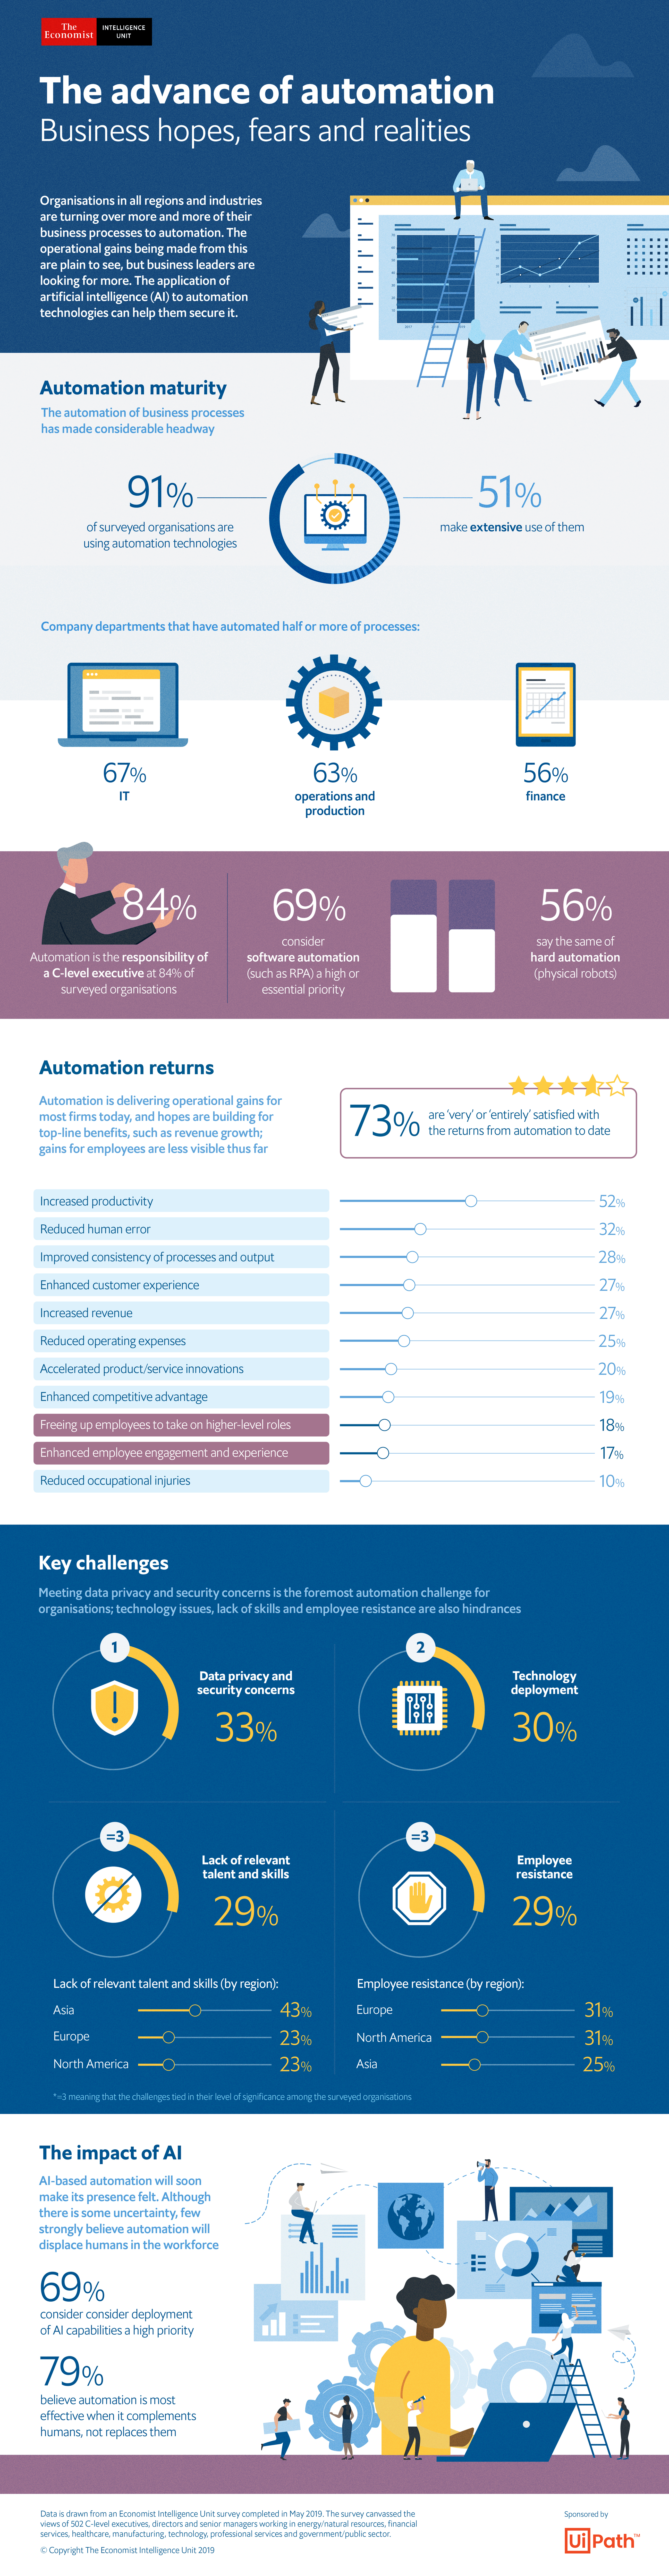 New Study Shows Adoption of Business Automation Technologies